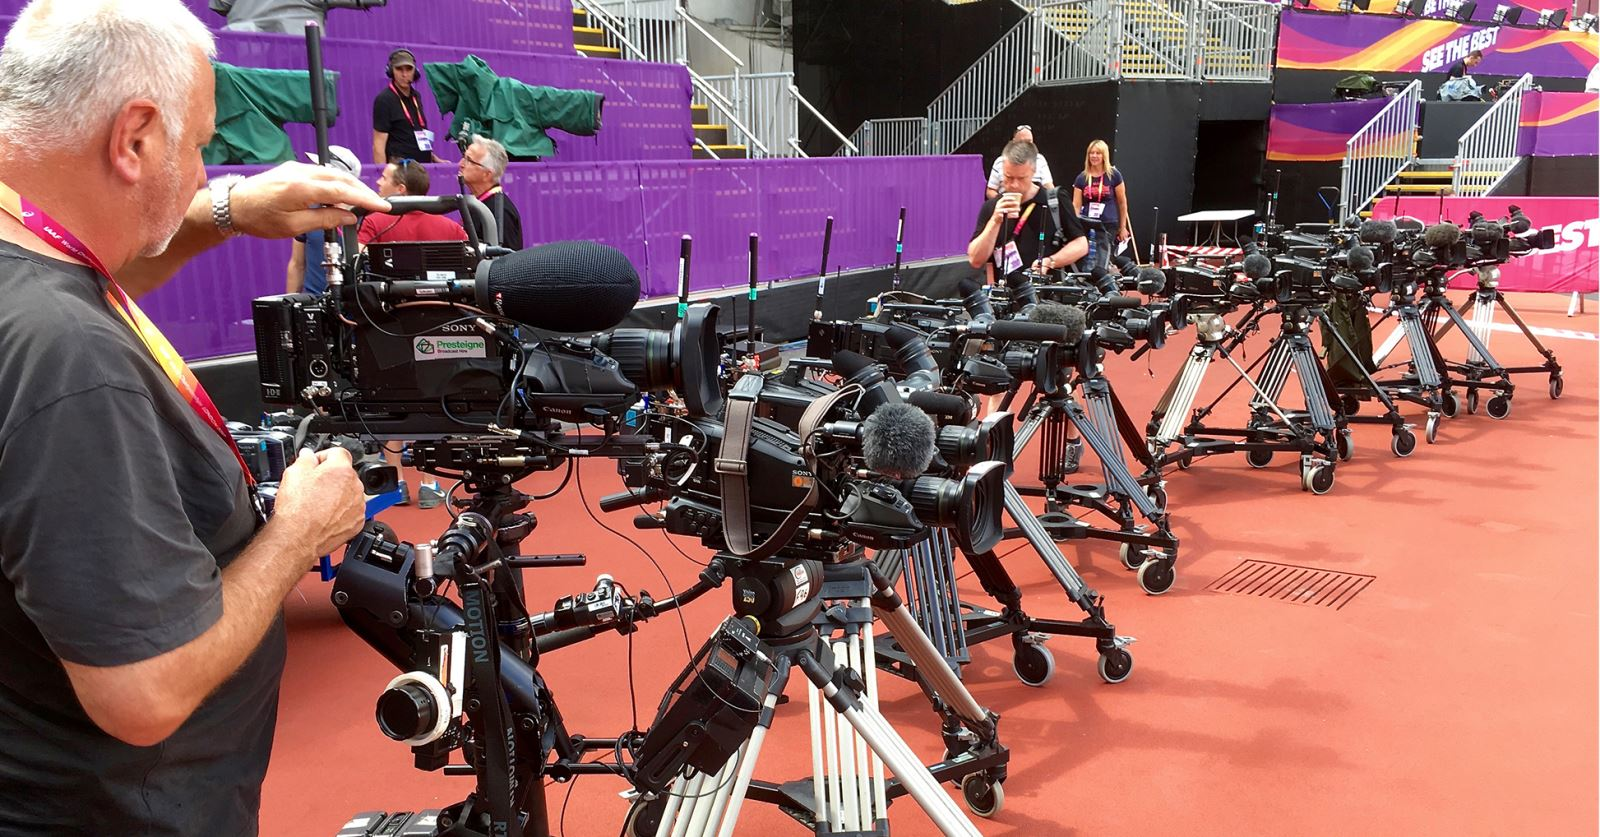 Just some of the radio cameras lined up ready for the IAFF World Championships in the London Olympic Stadium